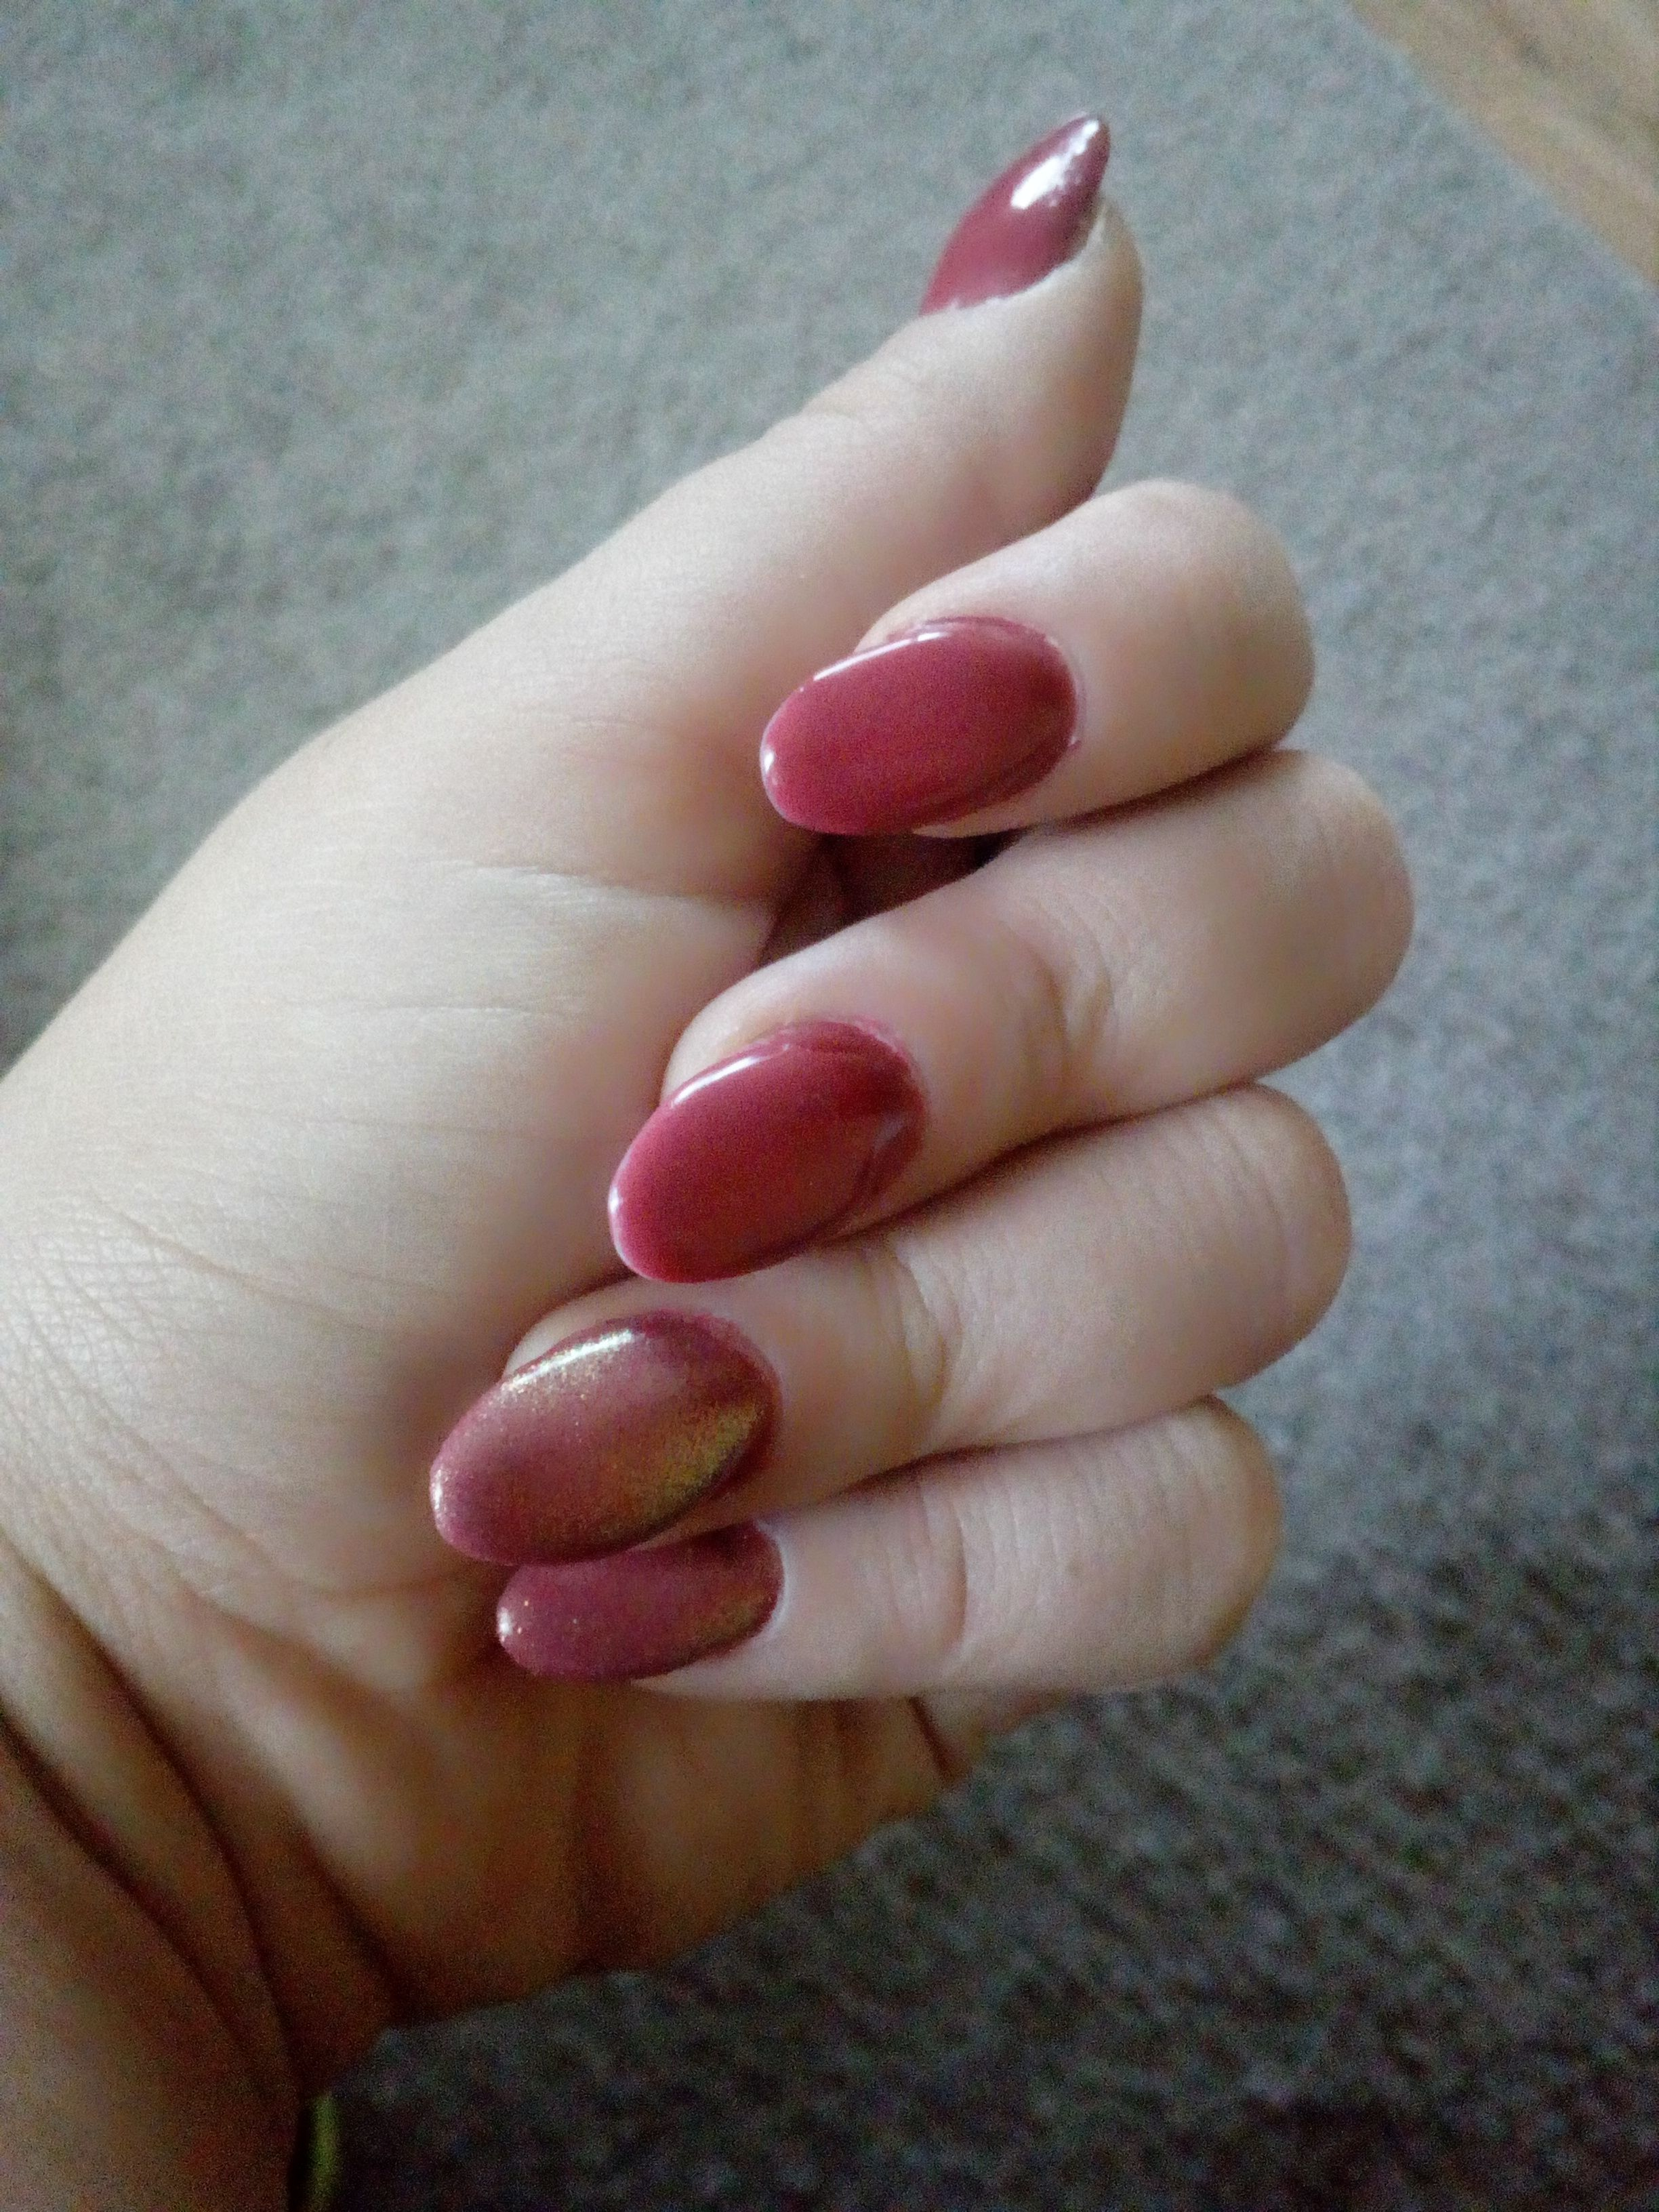 How to build nails on tipsy